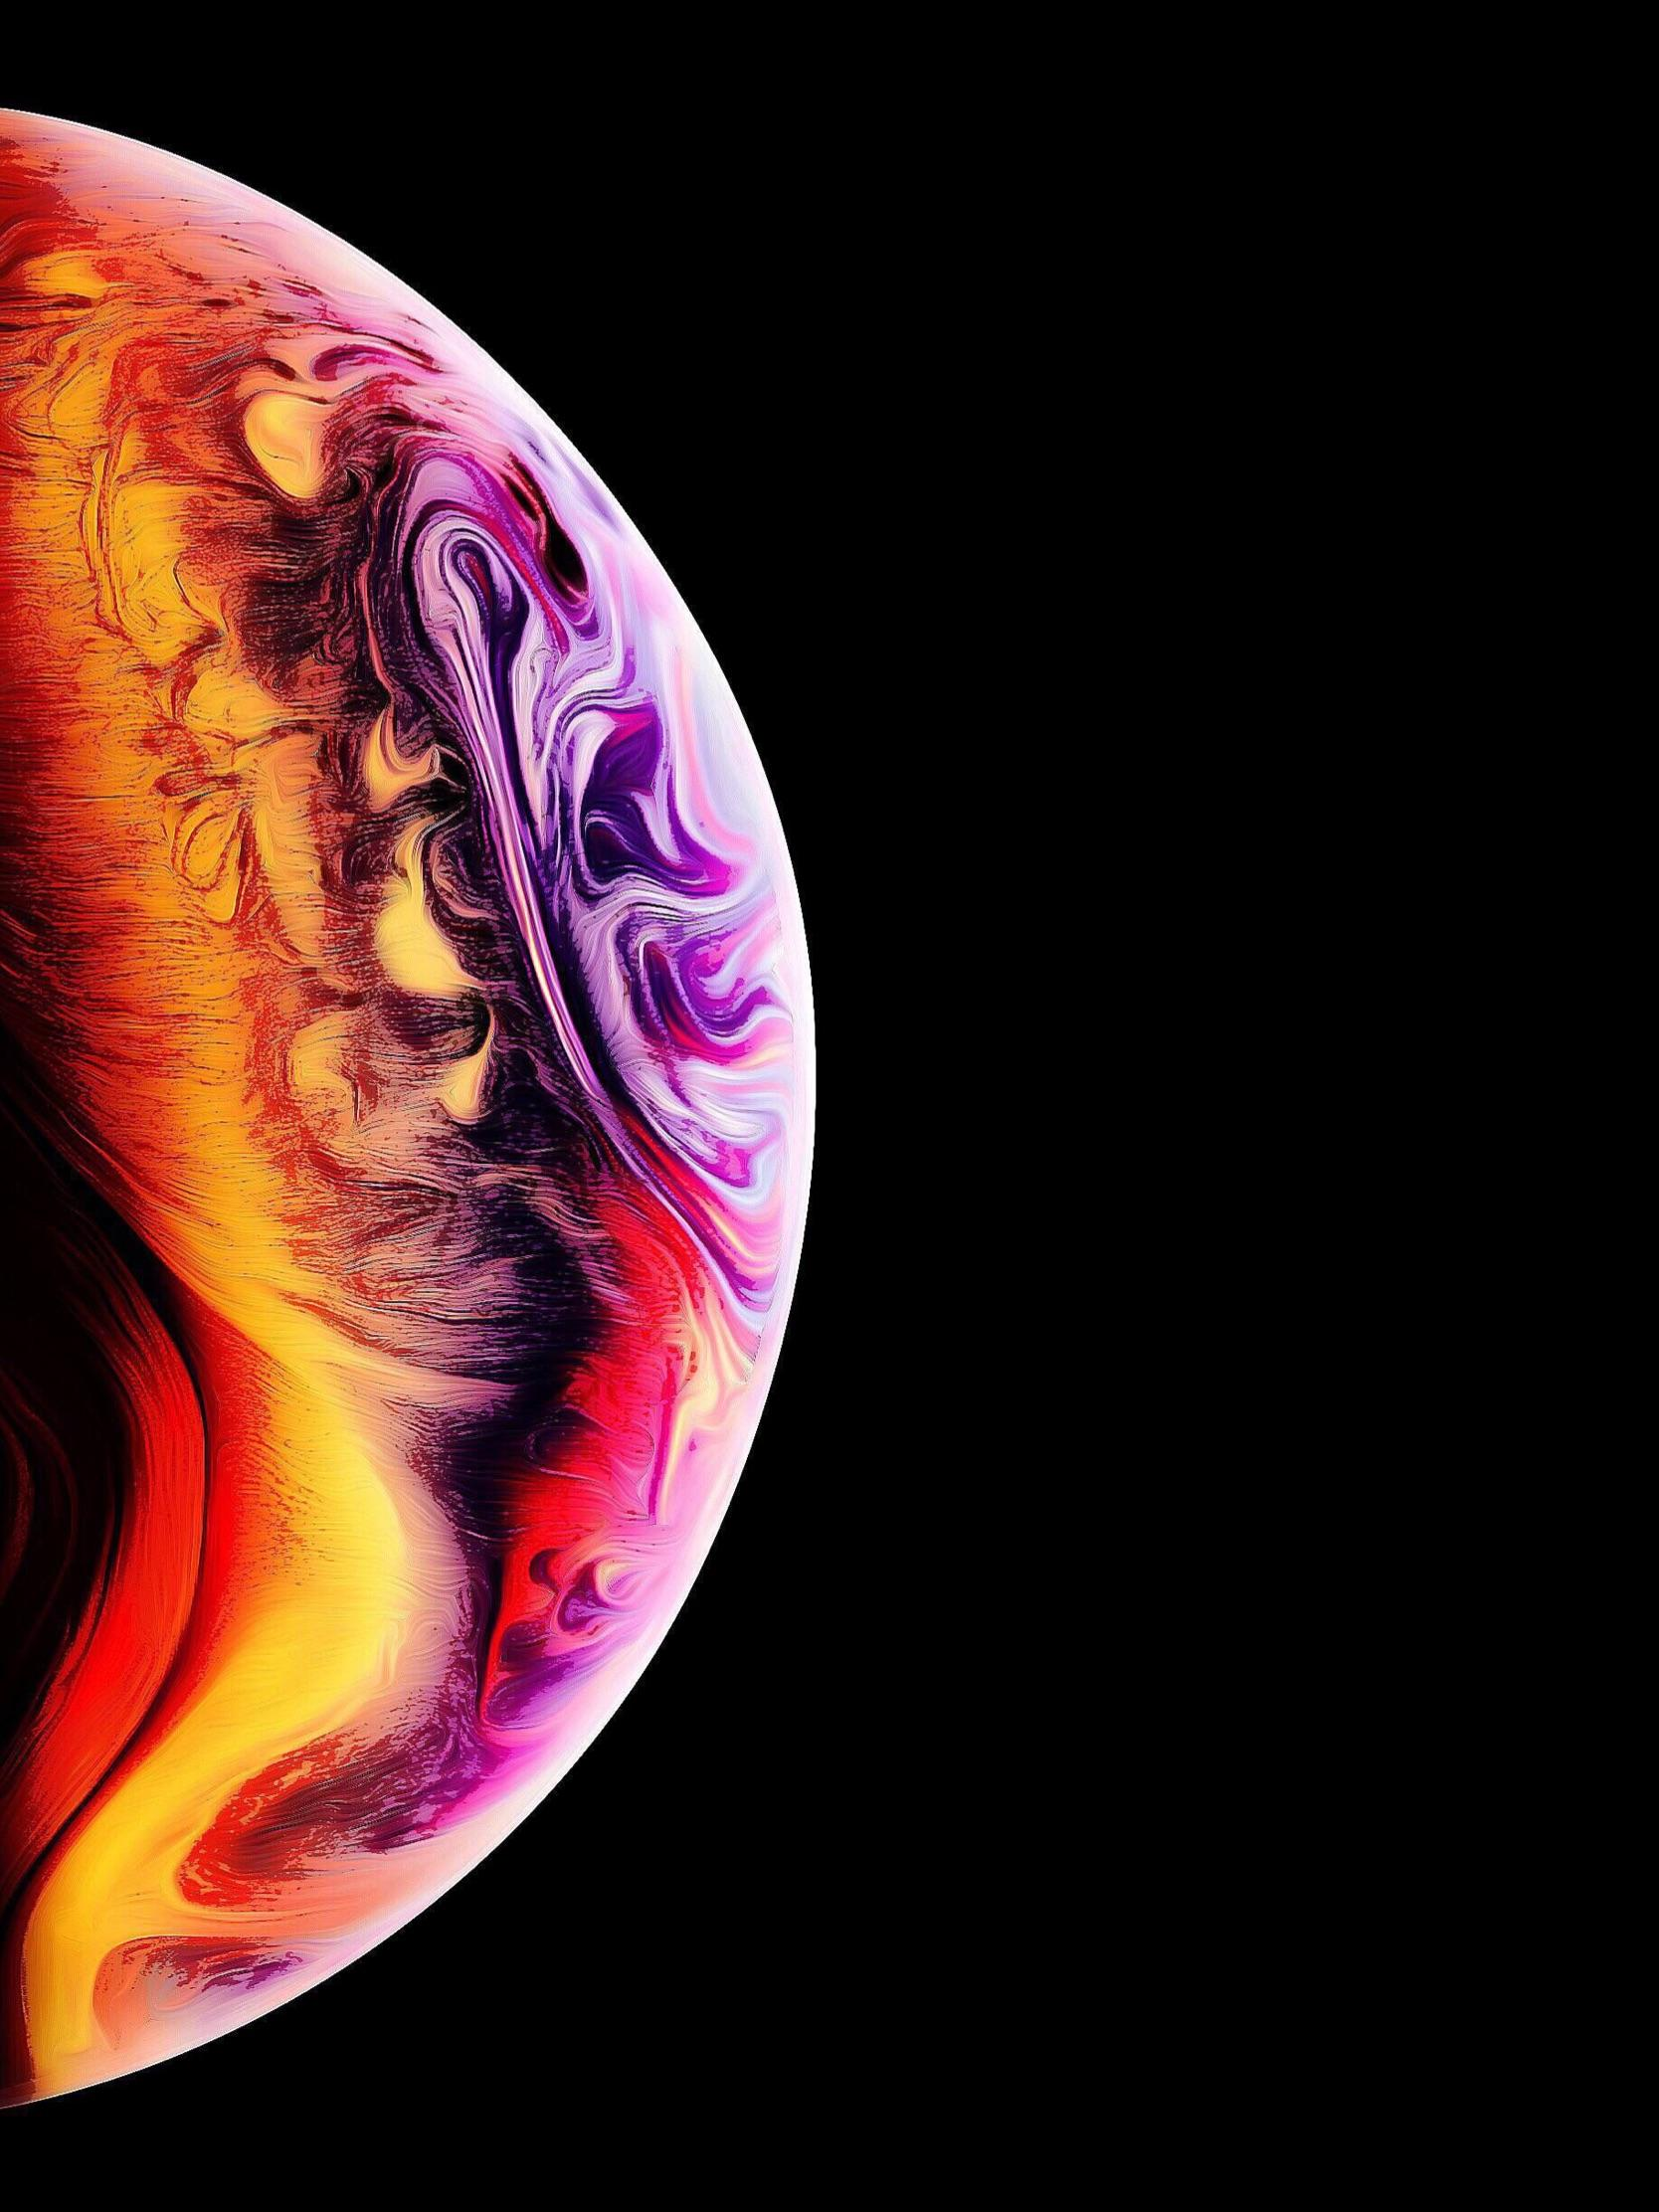 Full Hd Live Wallpaper For Laptop Leaked Iphone Xs Wallpaper For Ipad Pro 10 5 Ipad